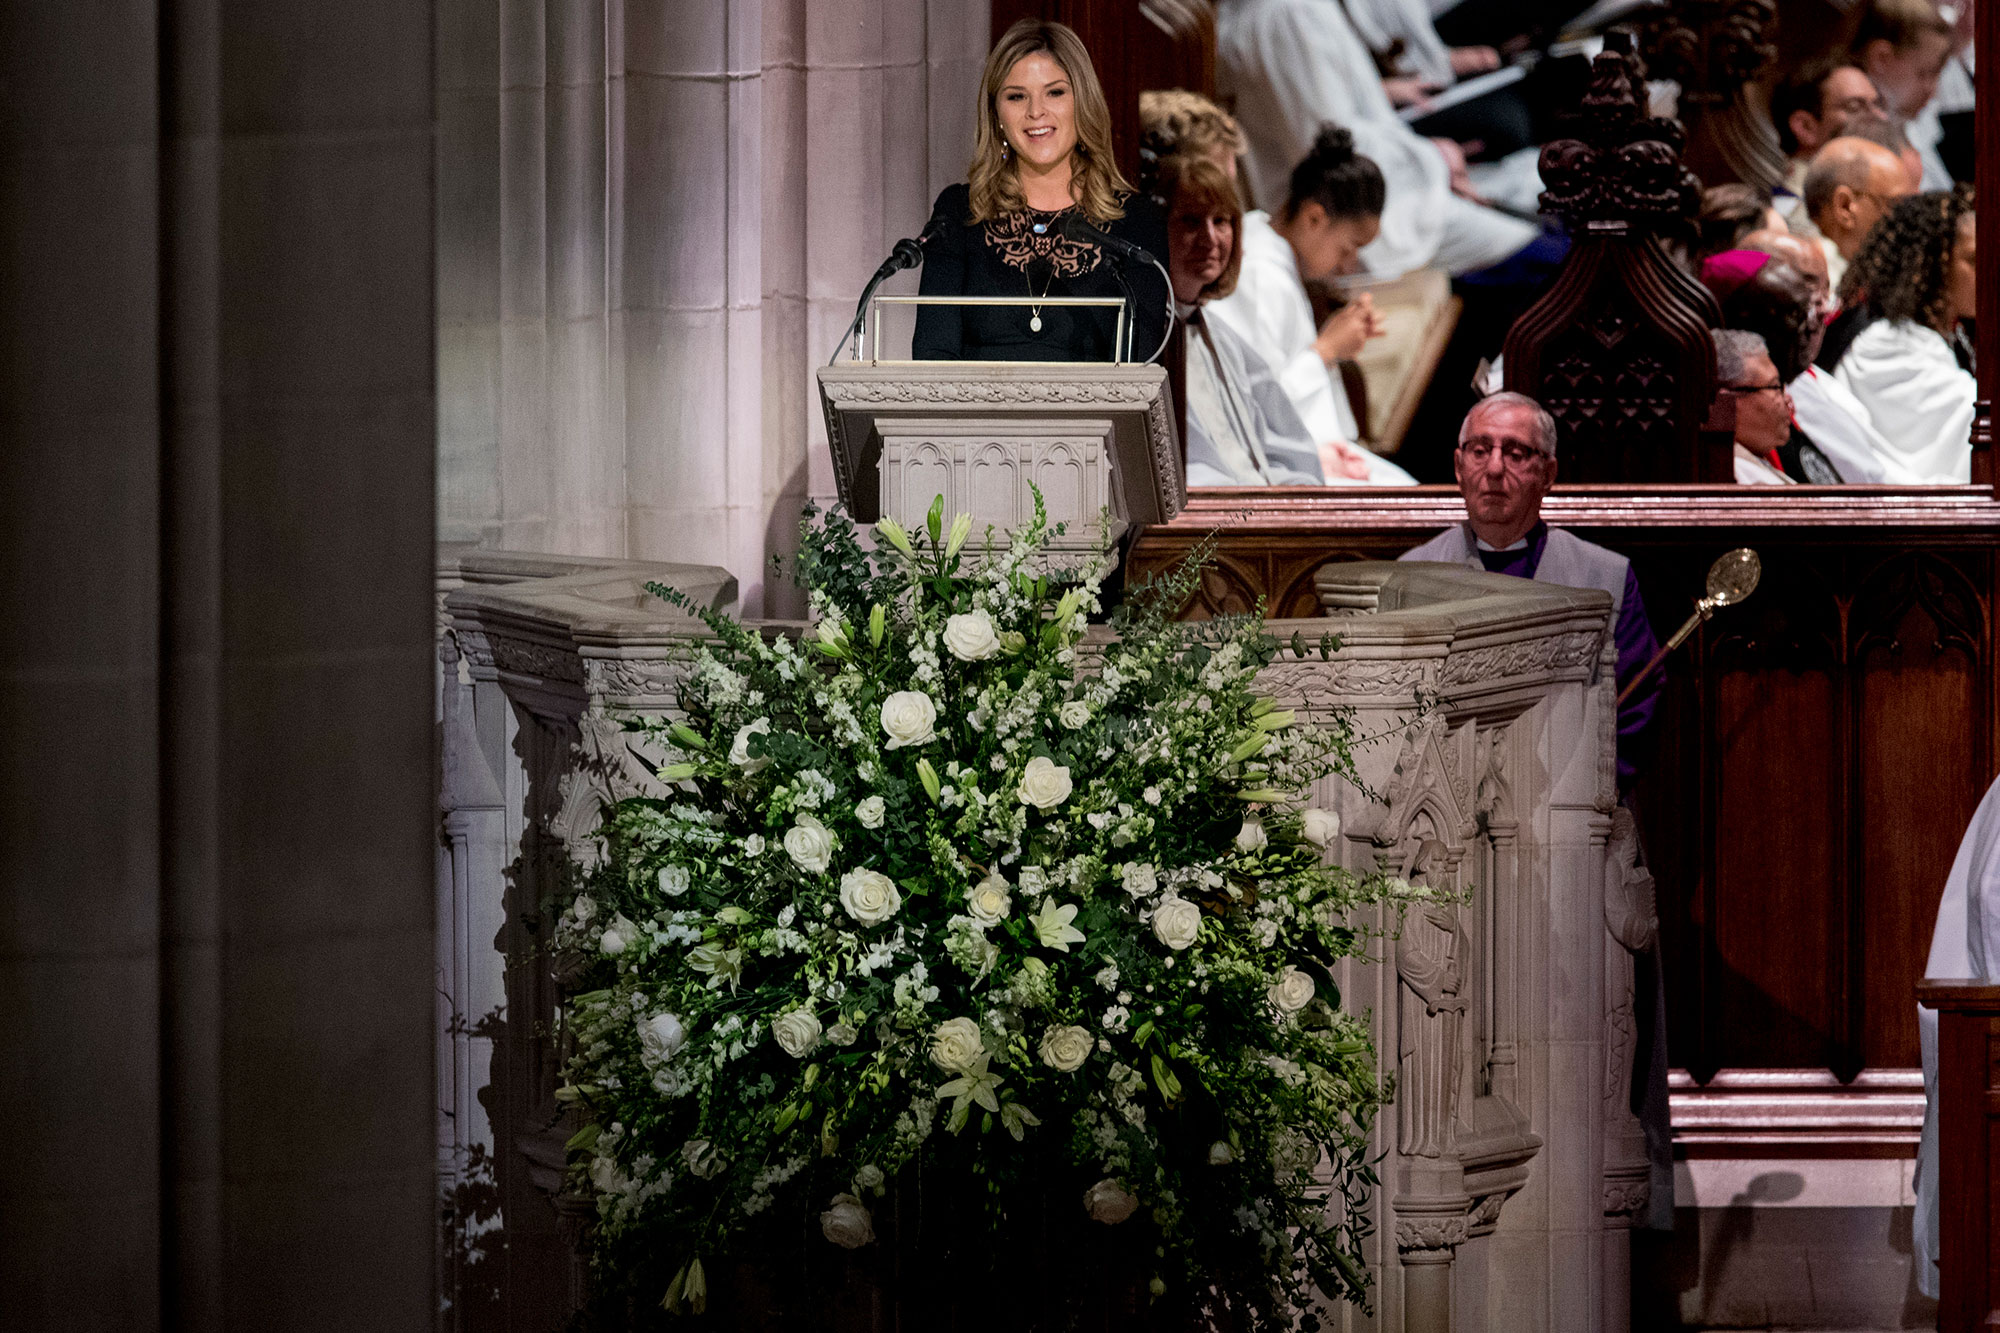 george bush funeral - The granddaughter of the late president placed her hand on his casket as she walked up to the podium to speak.